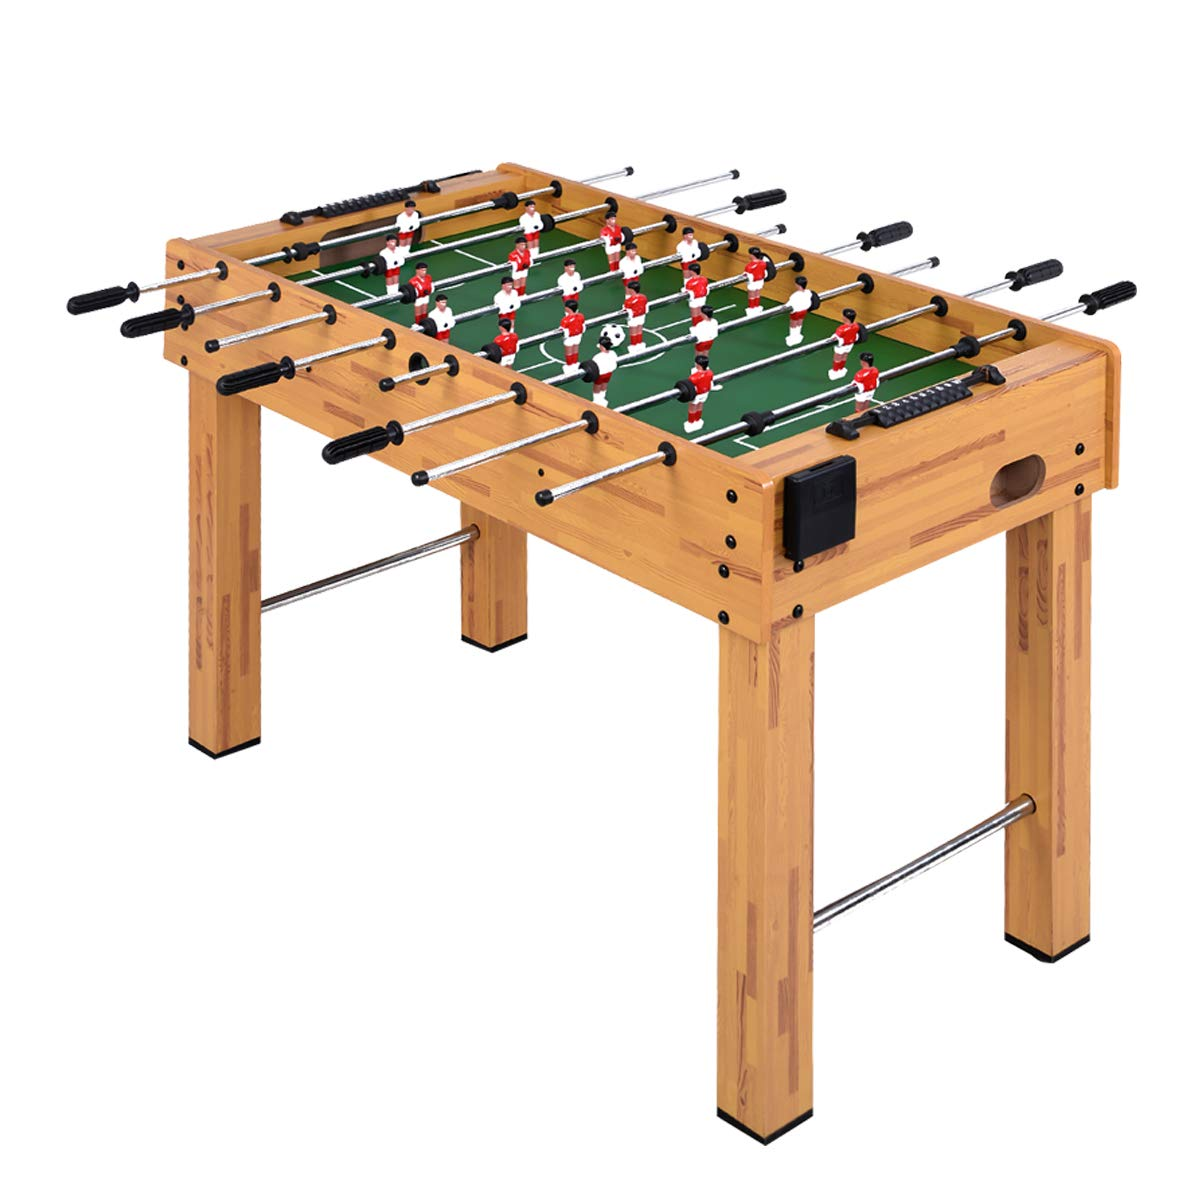 Goplus 48'' Foosball Table, Soccer Game Table w/ 2 Balls, Cup Holder Competition Sized Football Arcade for Indoor Game Room Sport (Burlywood) by Goplus